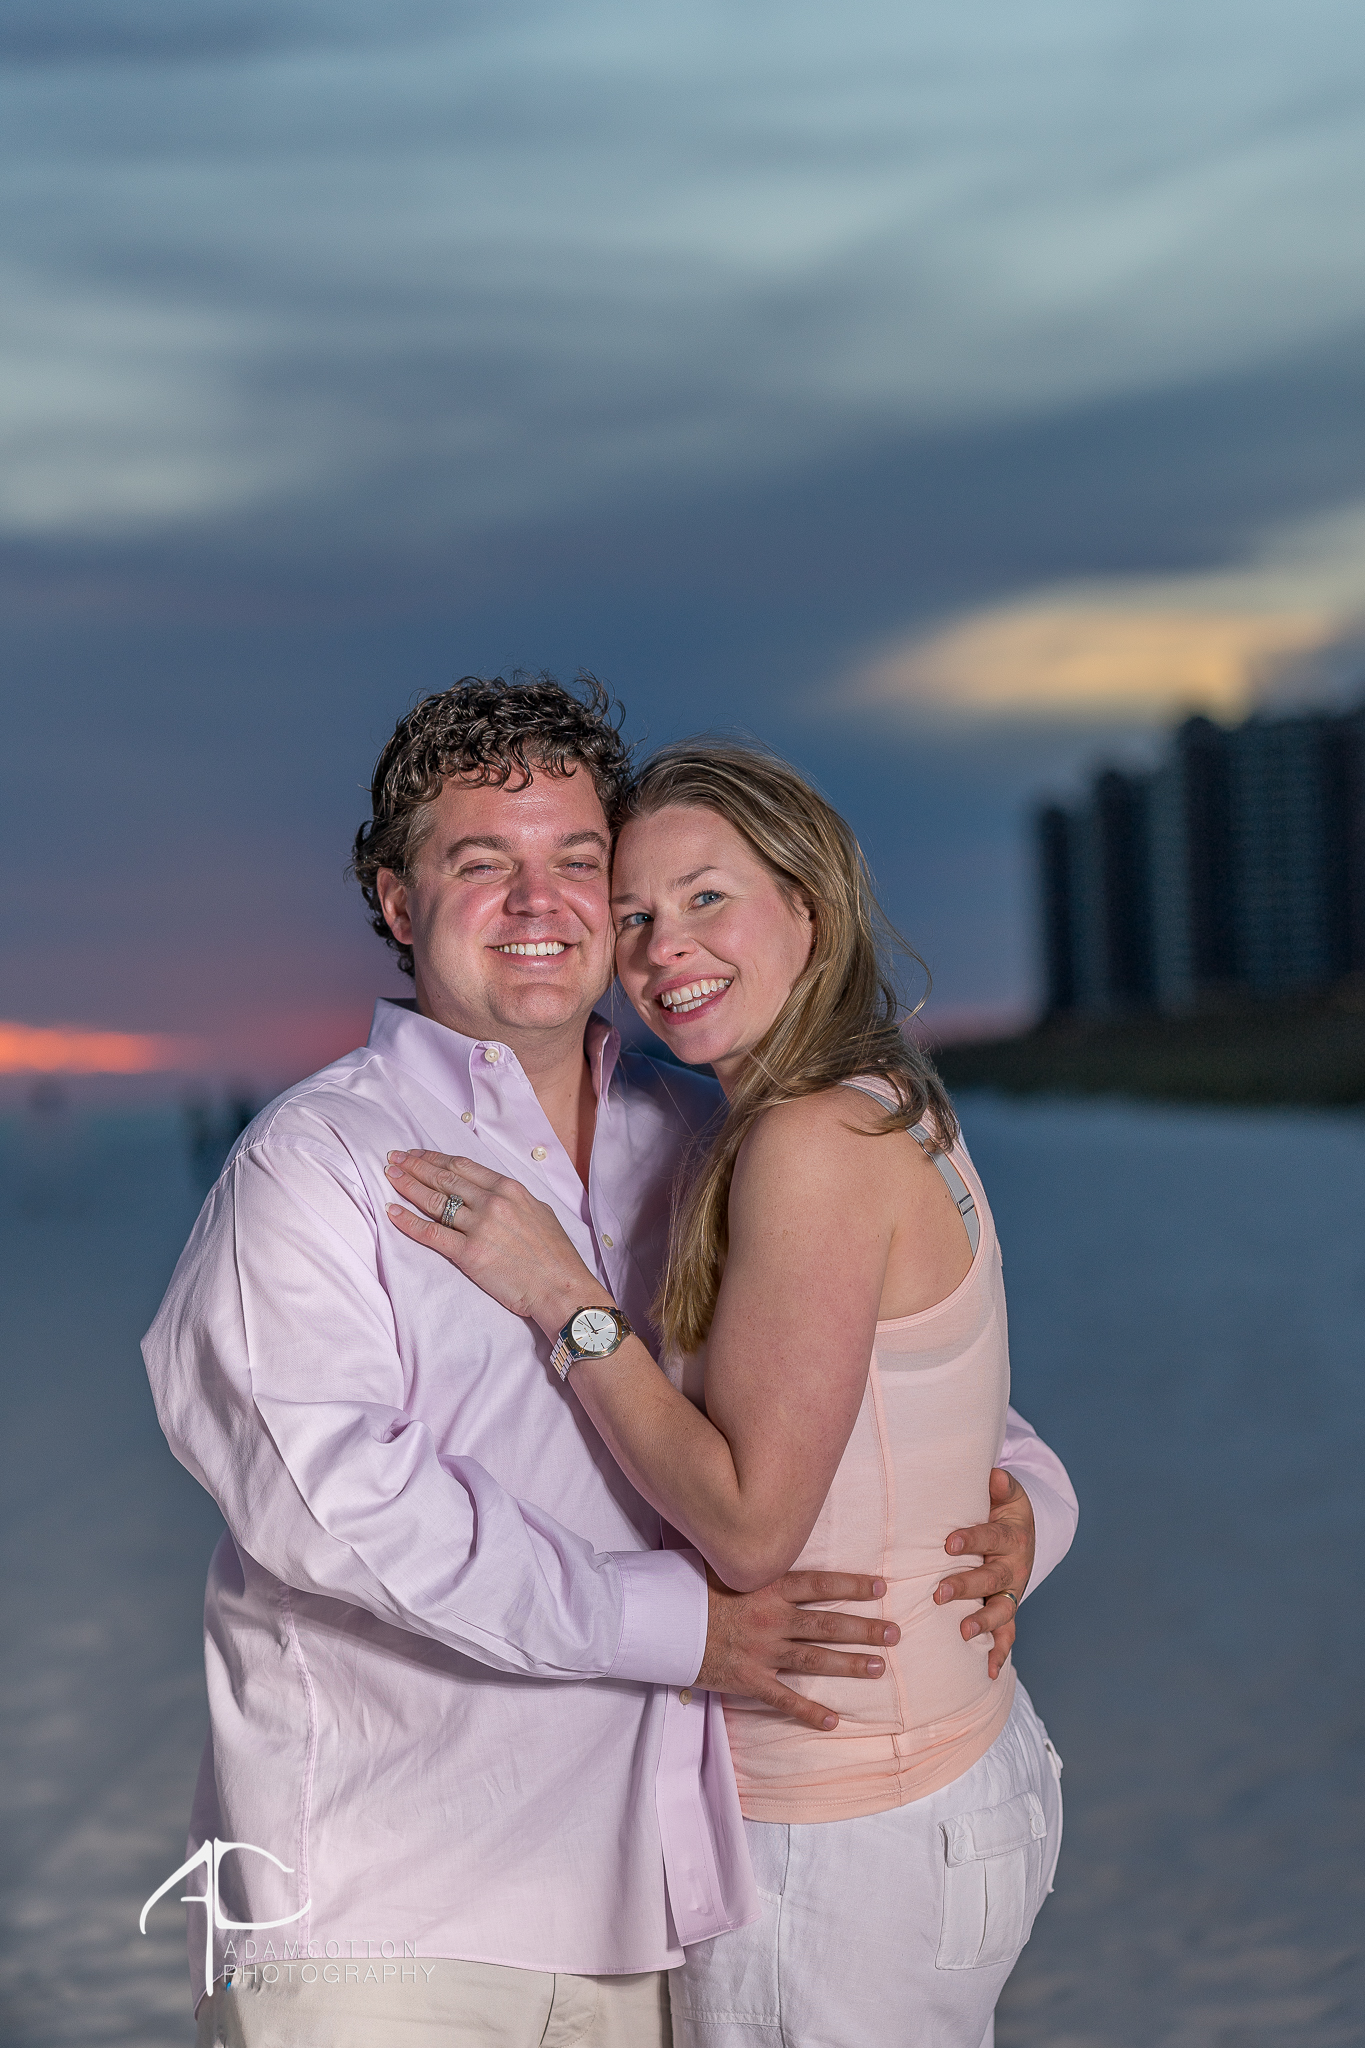 pensacola-beach-family-portraits.jpg